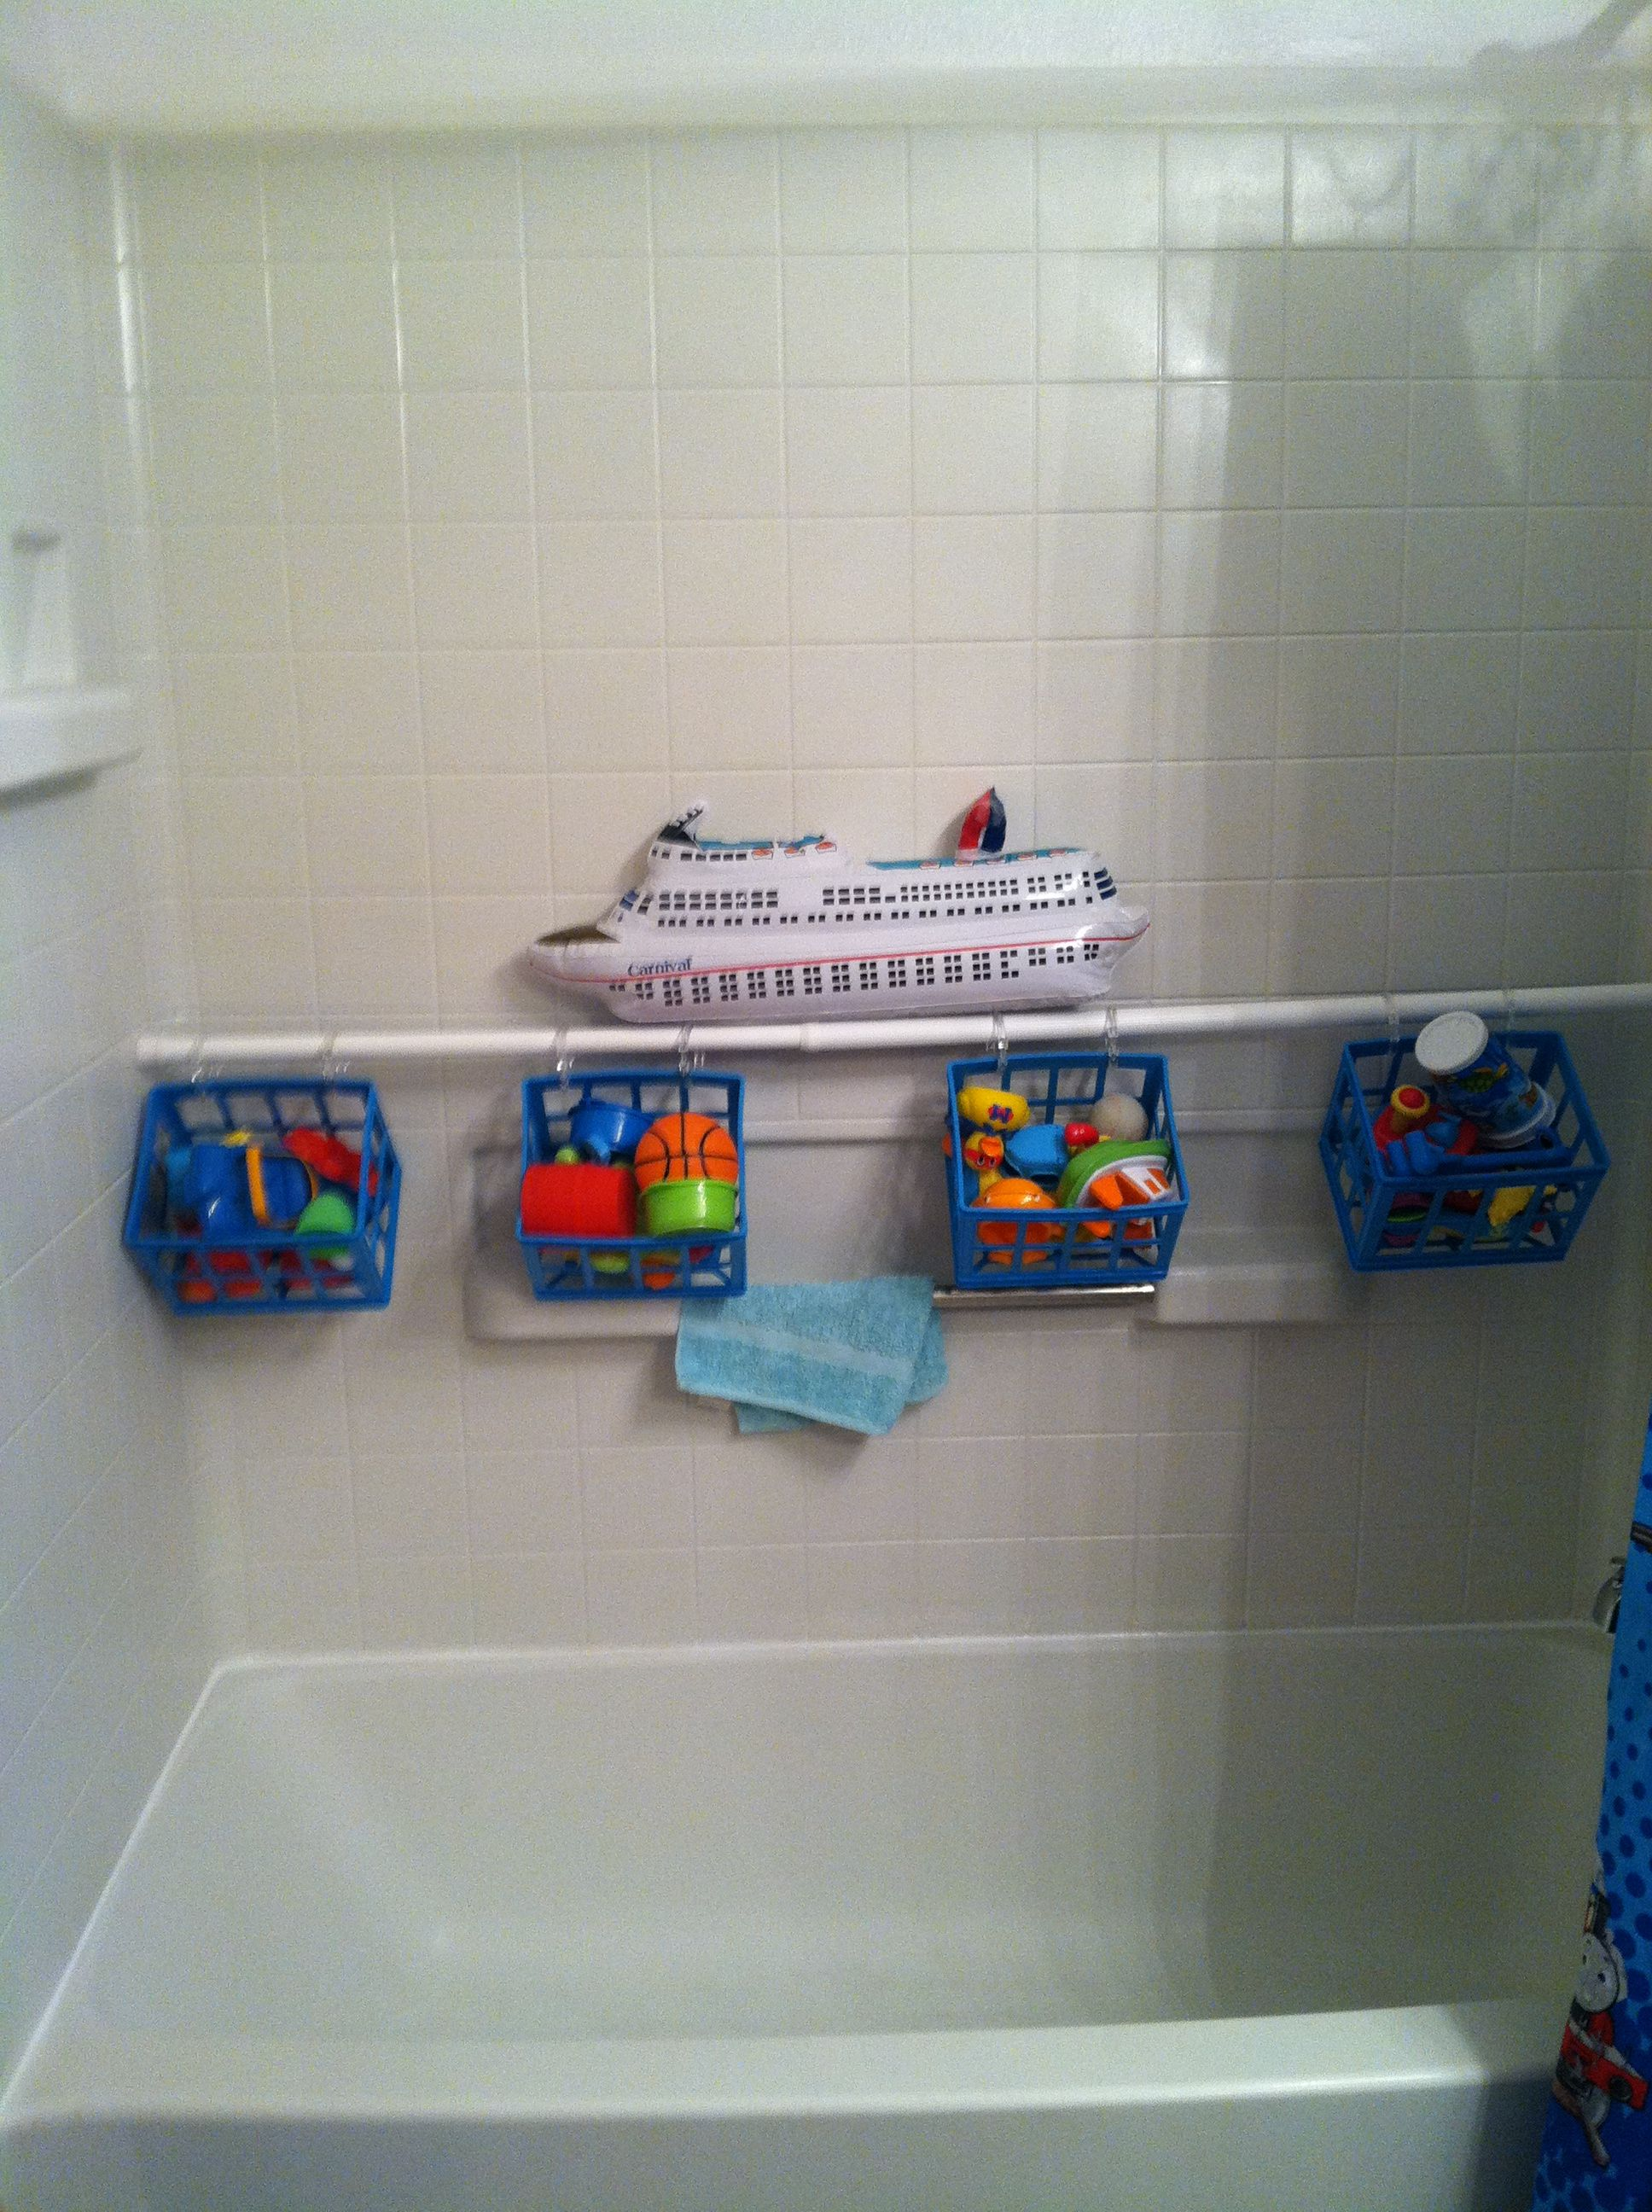 Dollar Store Baskets Shower Curtain Rod And Rings Out Of The Way Bath Toy Storage